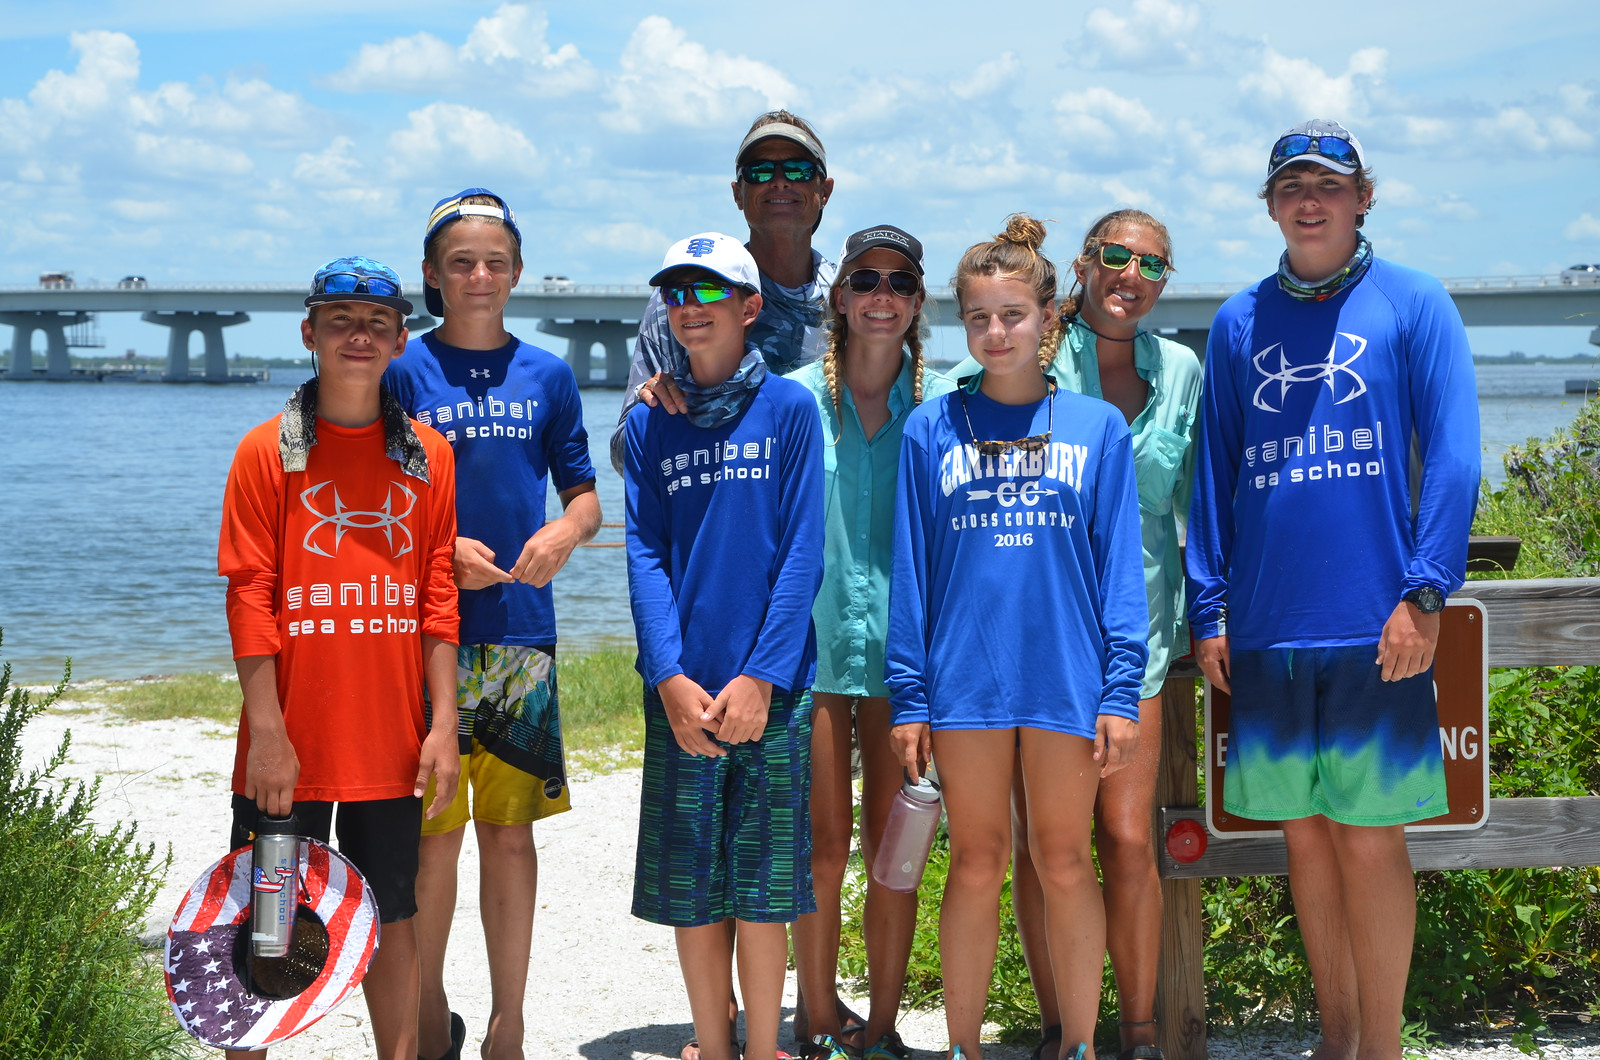 The group posed for a photo at Bailey Beach after their long journey.